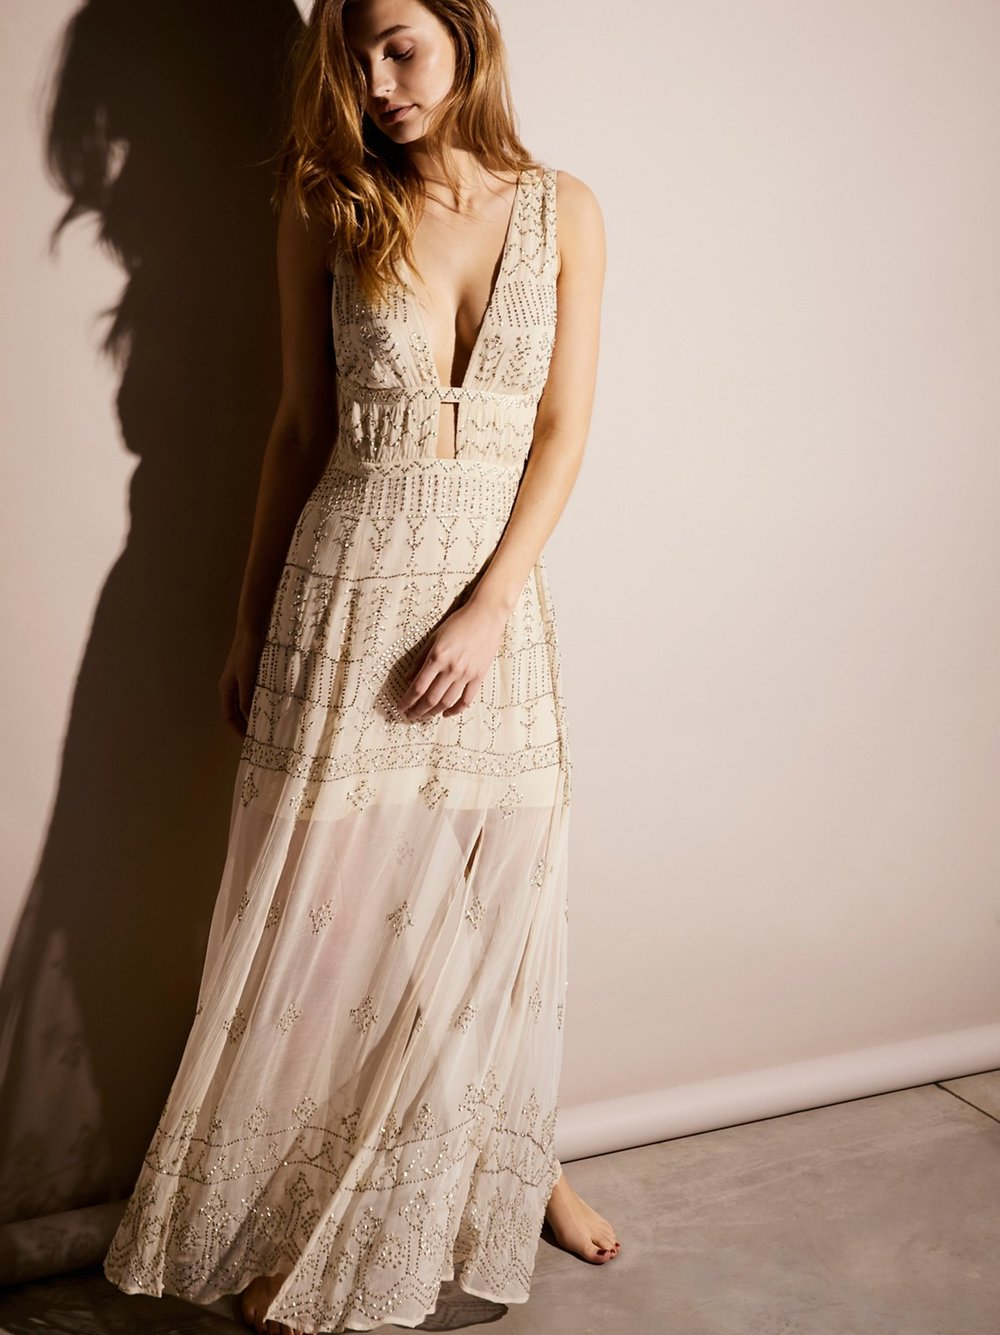 https://www.freepeople.com/shop/carolyns-limited-edition-white-dress-41343880/